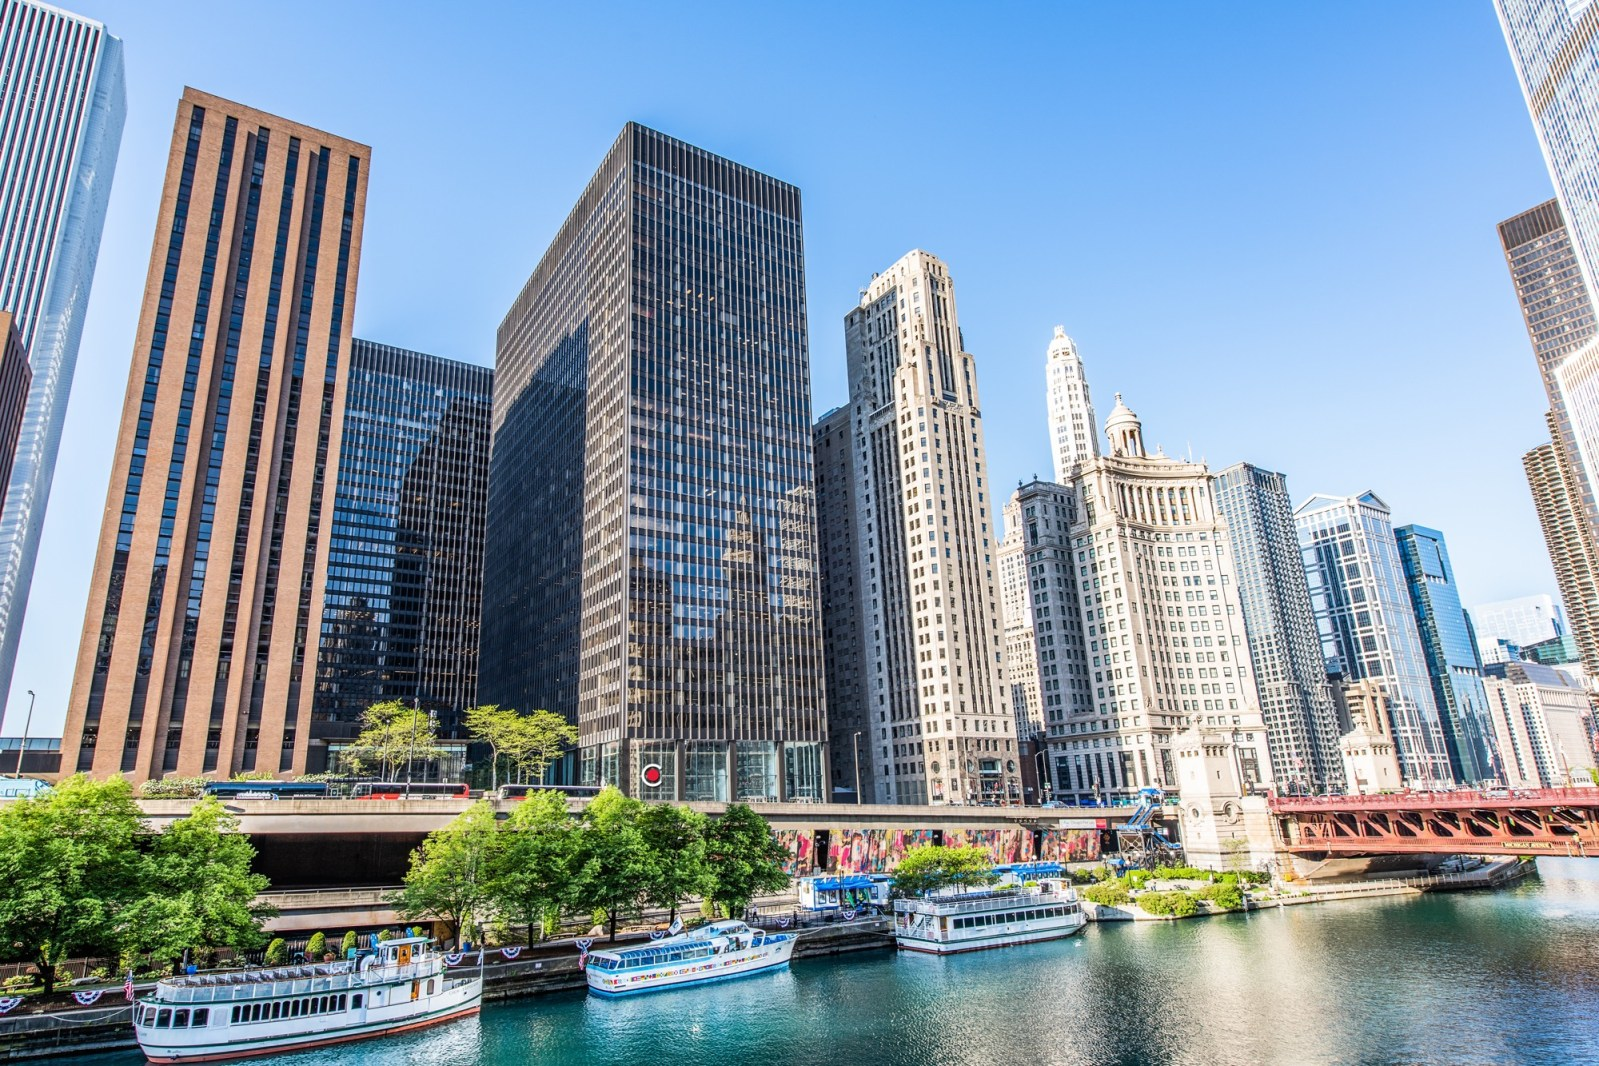 Things You Must Do While In Chicago